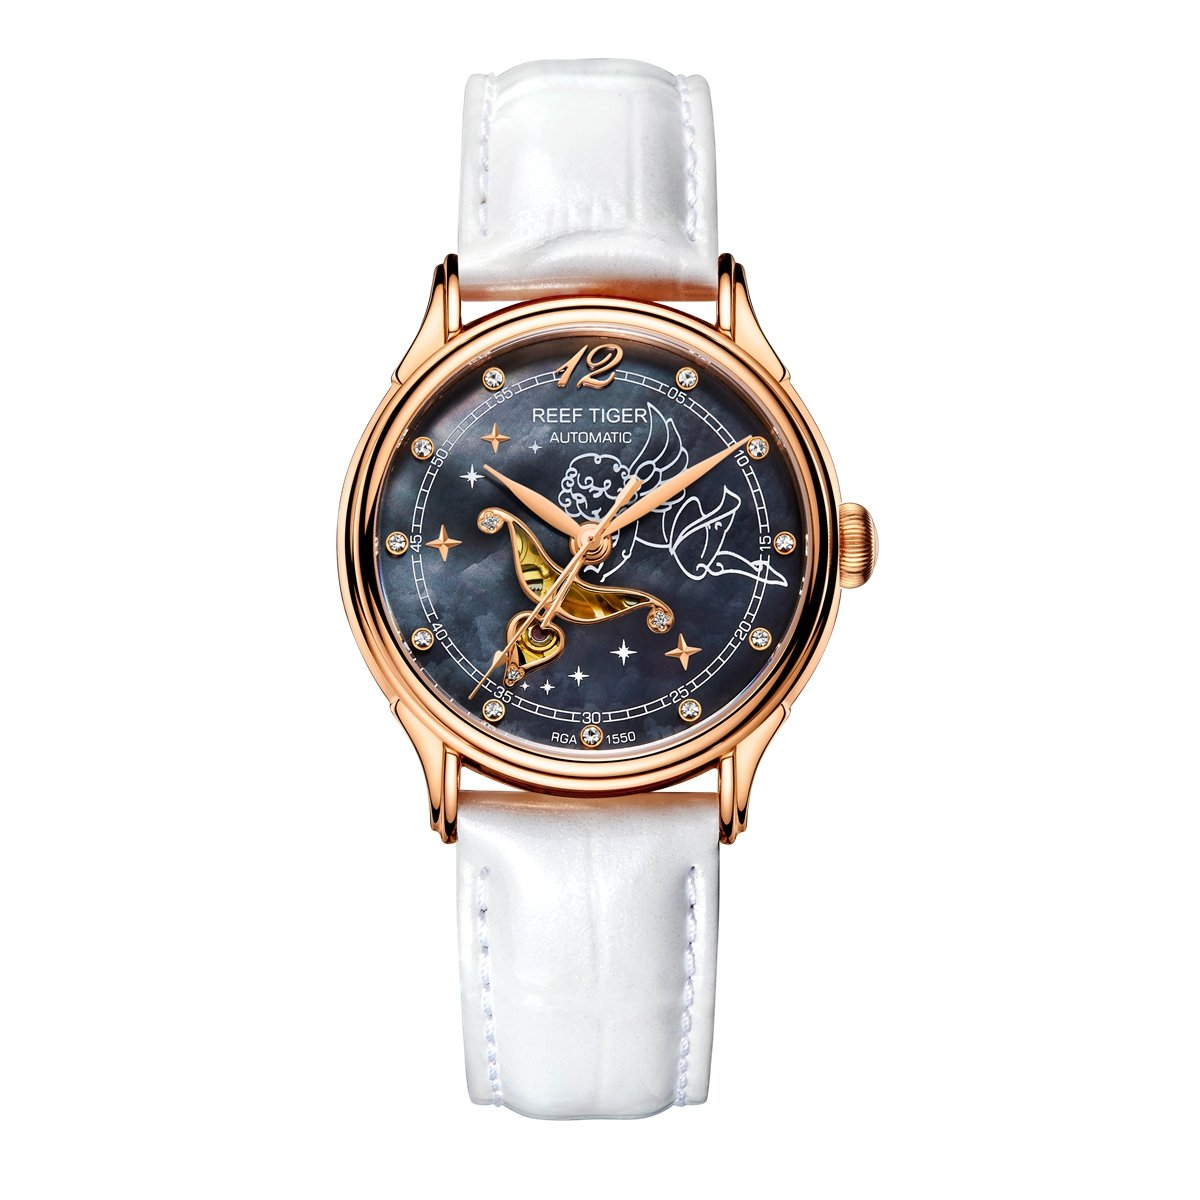 Reef Tiger Luxury Fashion Watches Women's Rose Gold Automatic Watches for Lover RGA1550